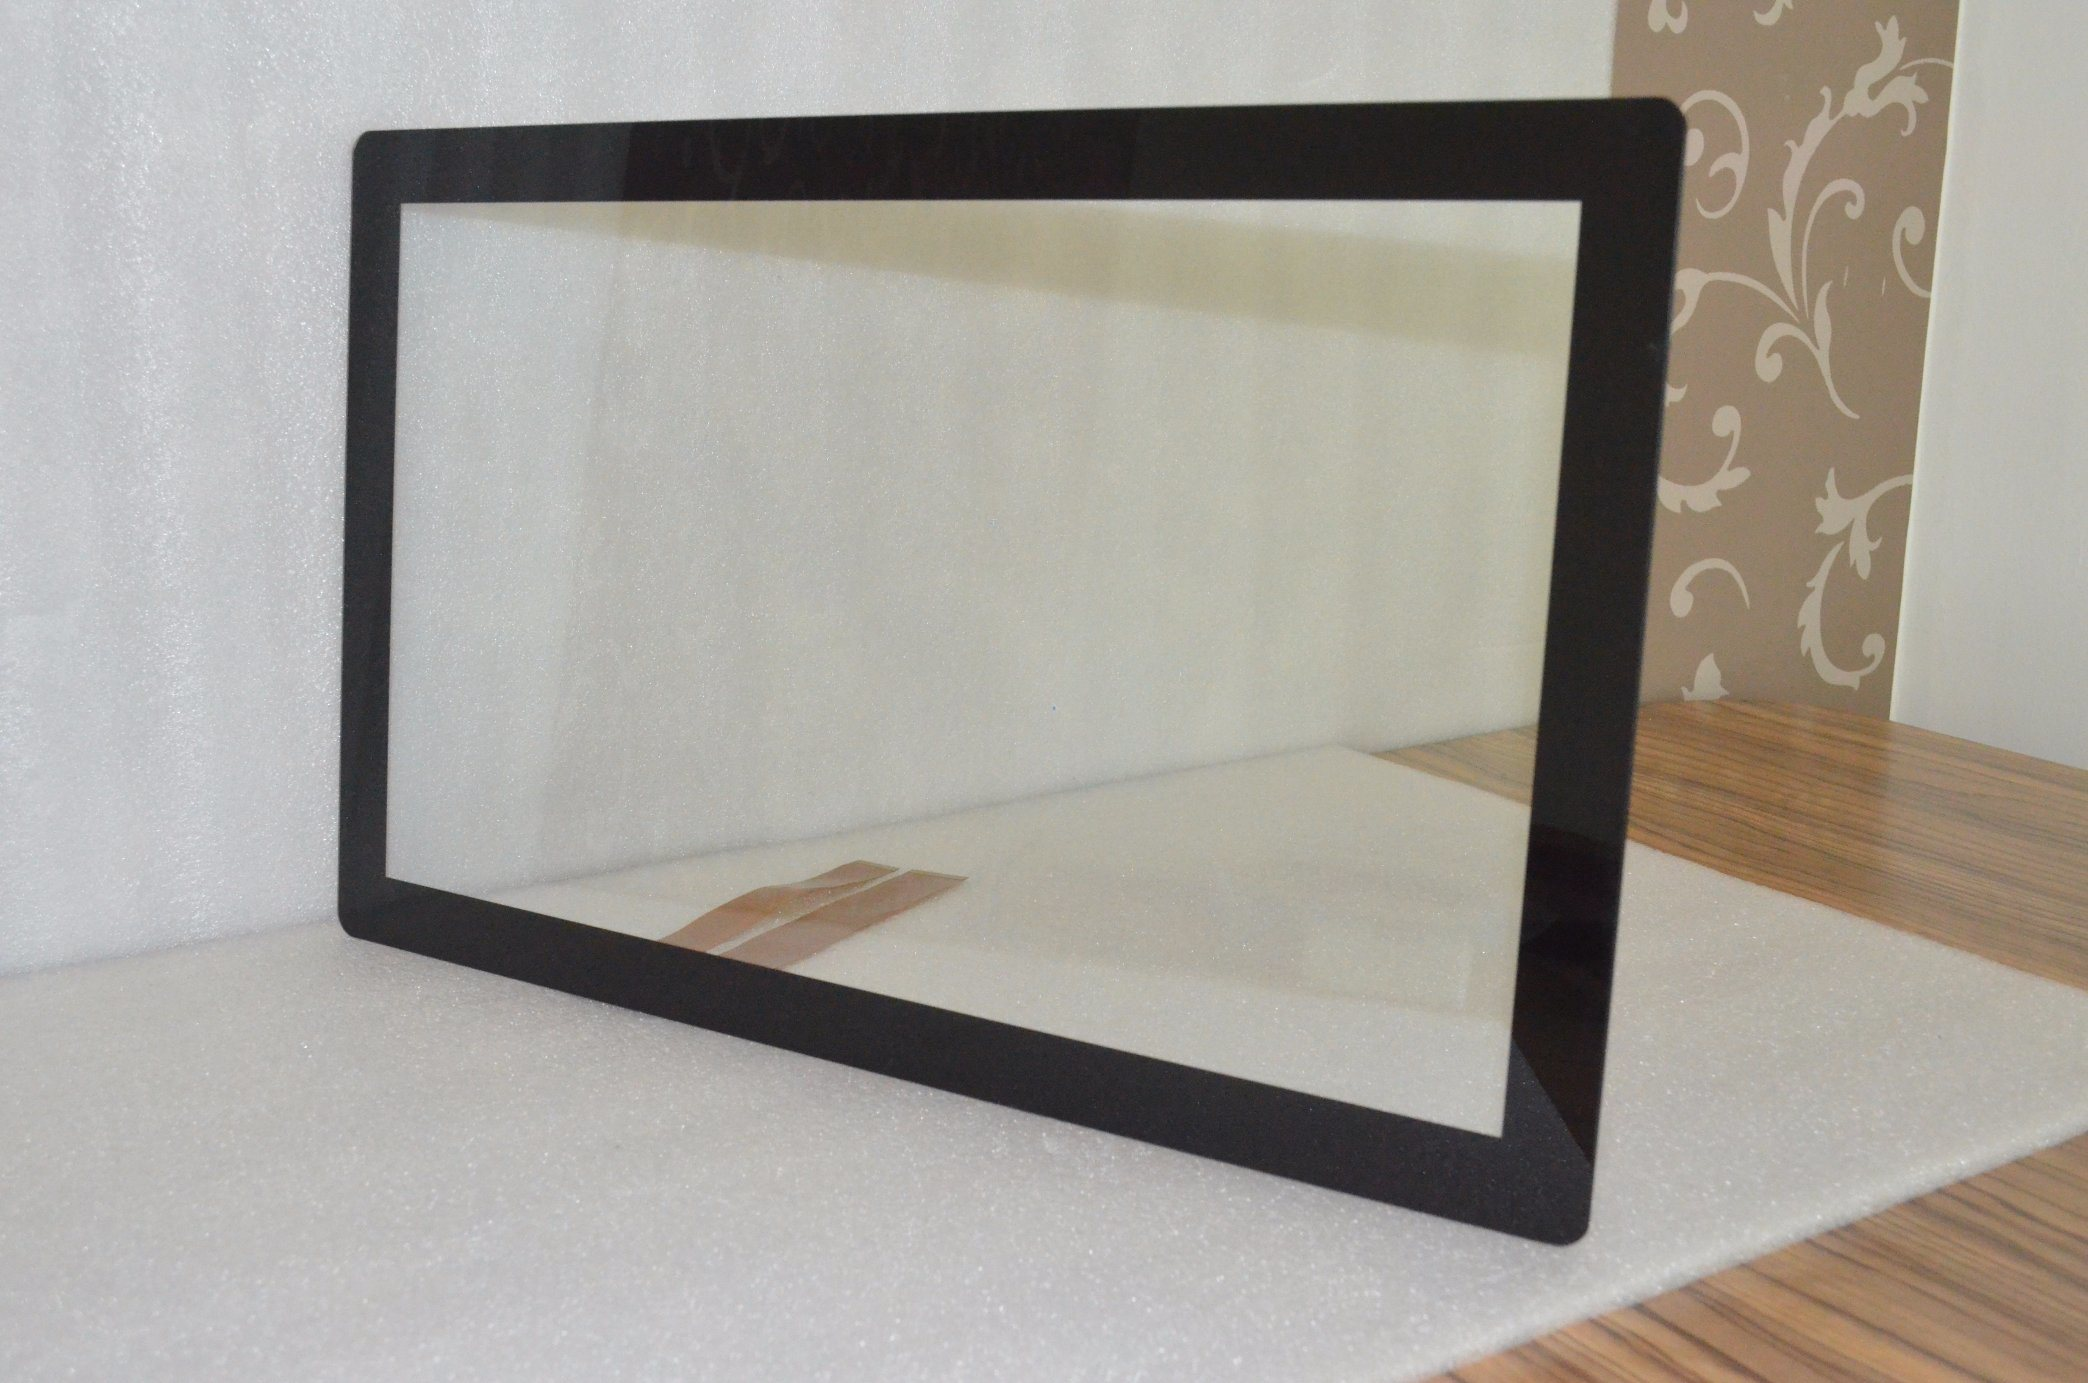 17 Inch TFT LCD Display Panels with Capacitive Touch Screen